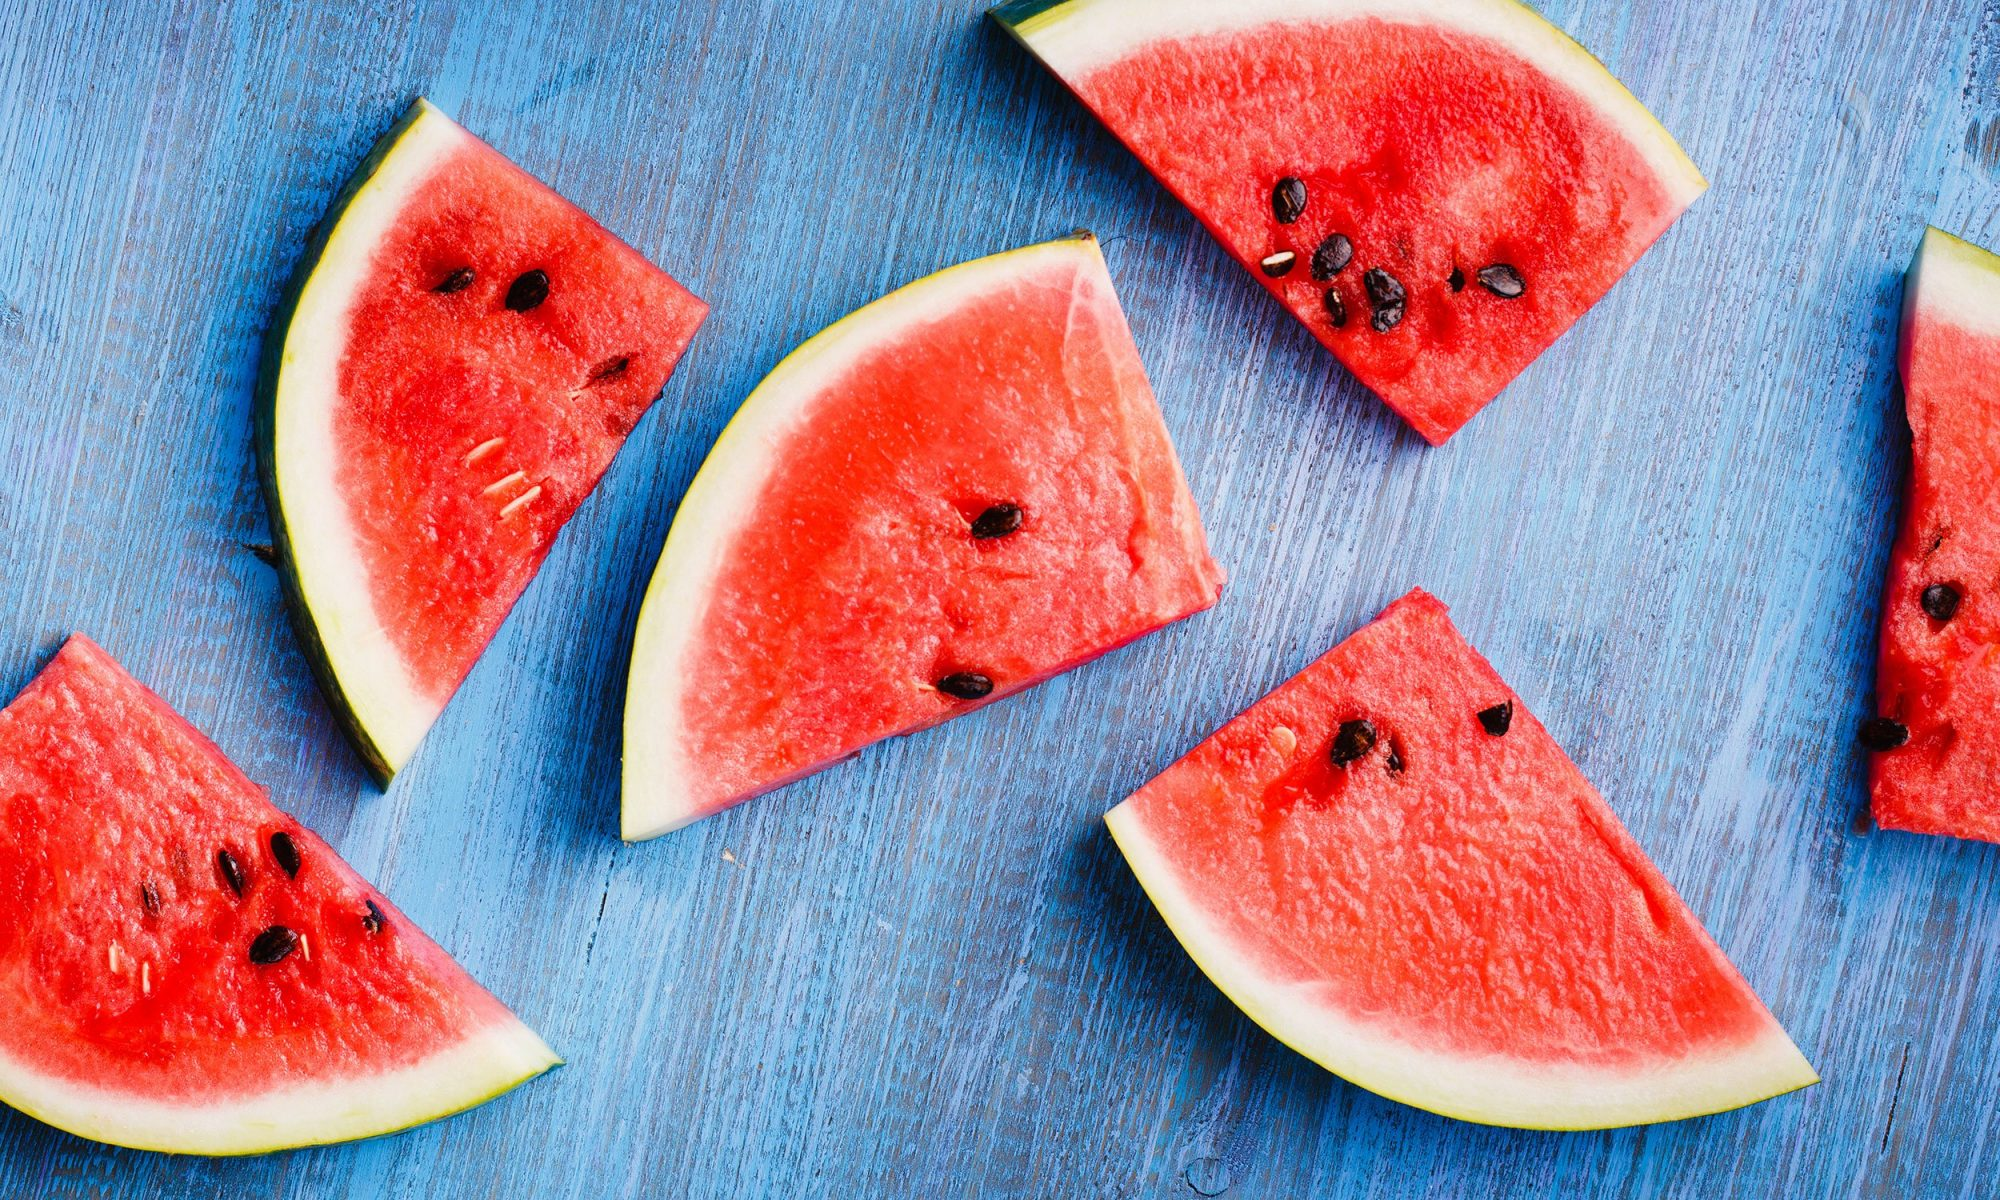 Can You Eat Watermelon Seeds?